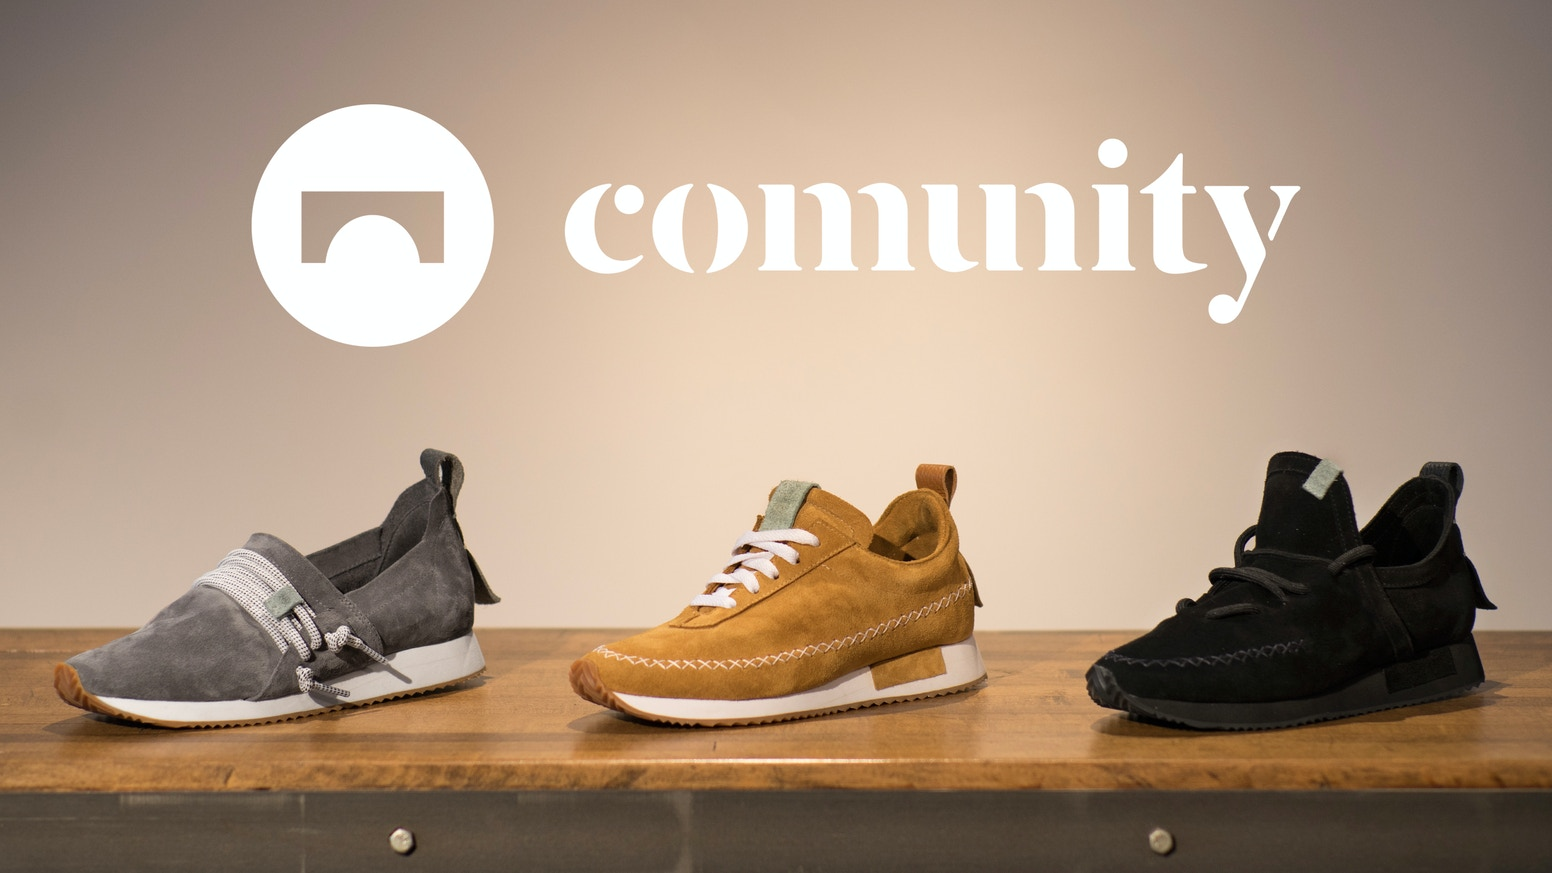 2d089bacca COMUNITYmade shoes by Comunity Team — Kickstarter